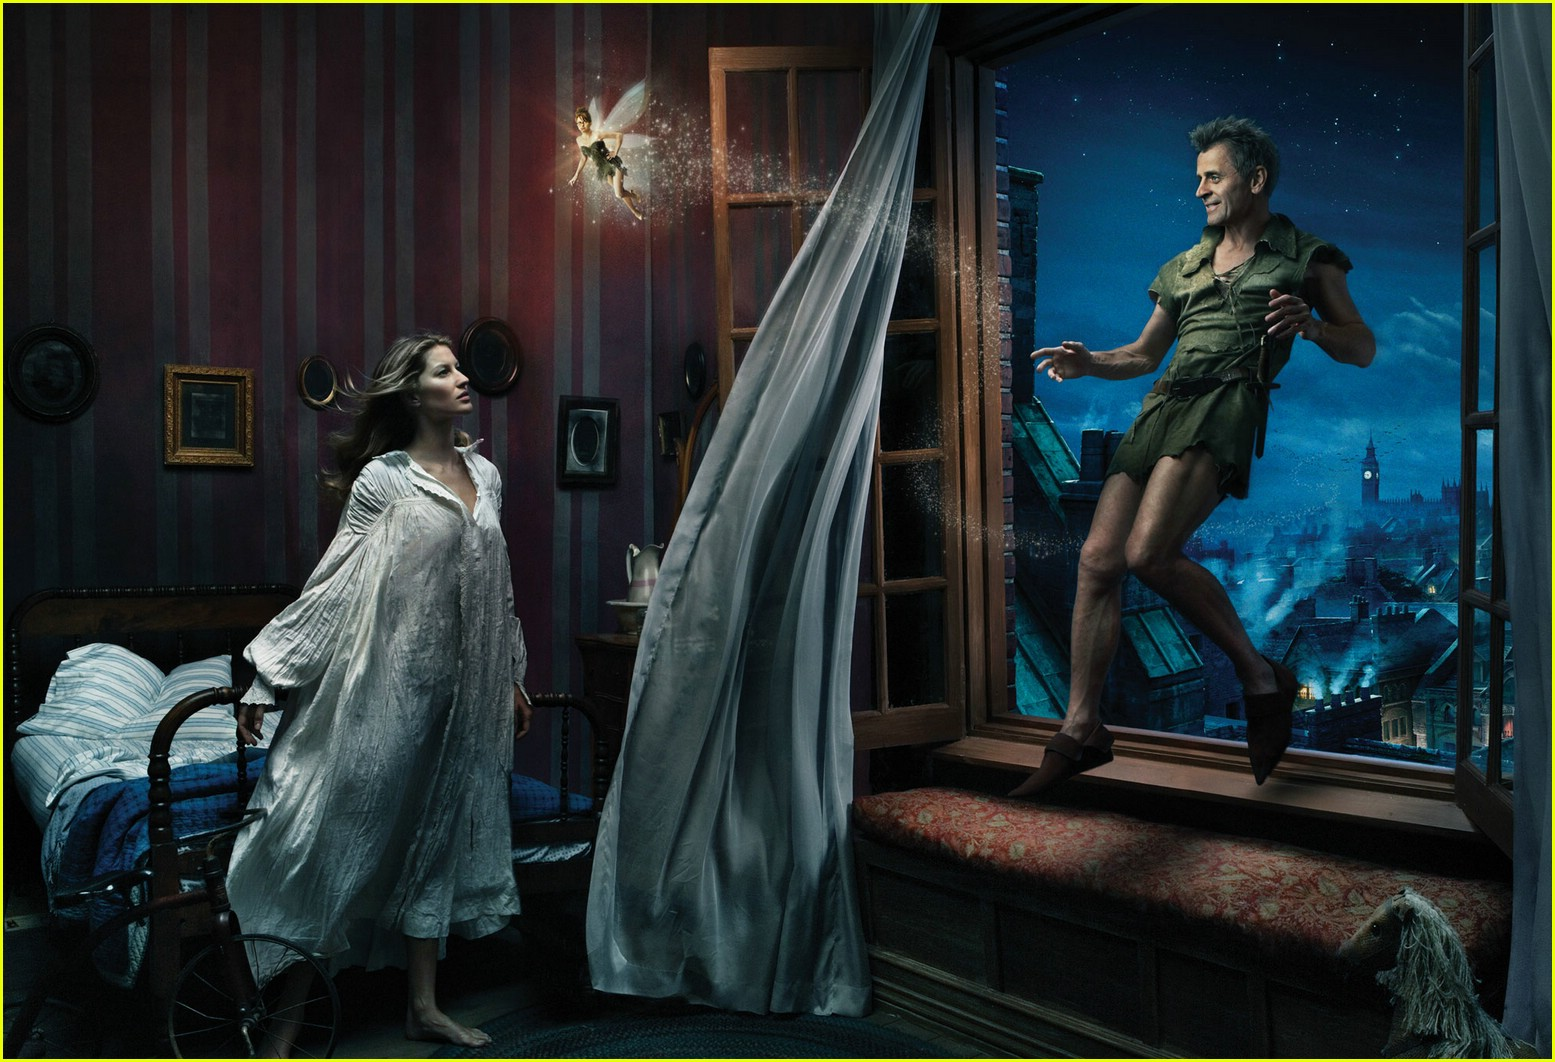 Anthony Luke S Not Just Another Photoblog Blog Annie Leibovitz Shoots Celebs As Disney Characters